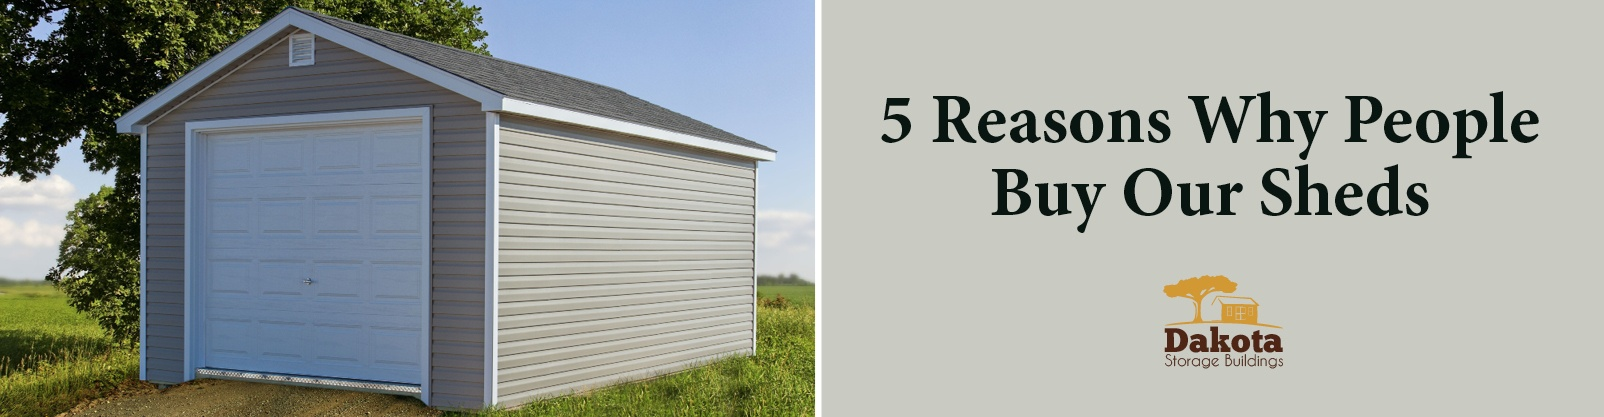 5 Reasons Why People Buy Our Storage Buildings